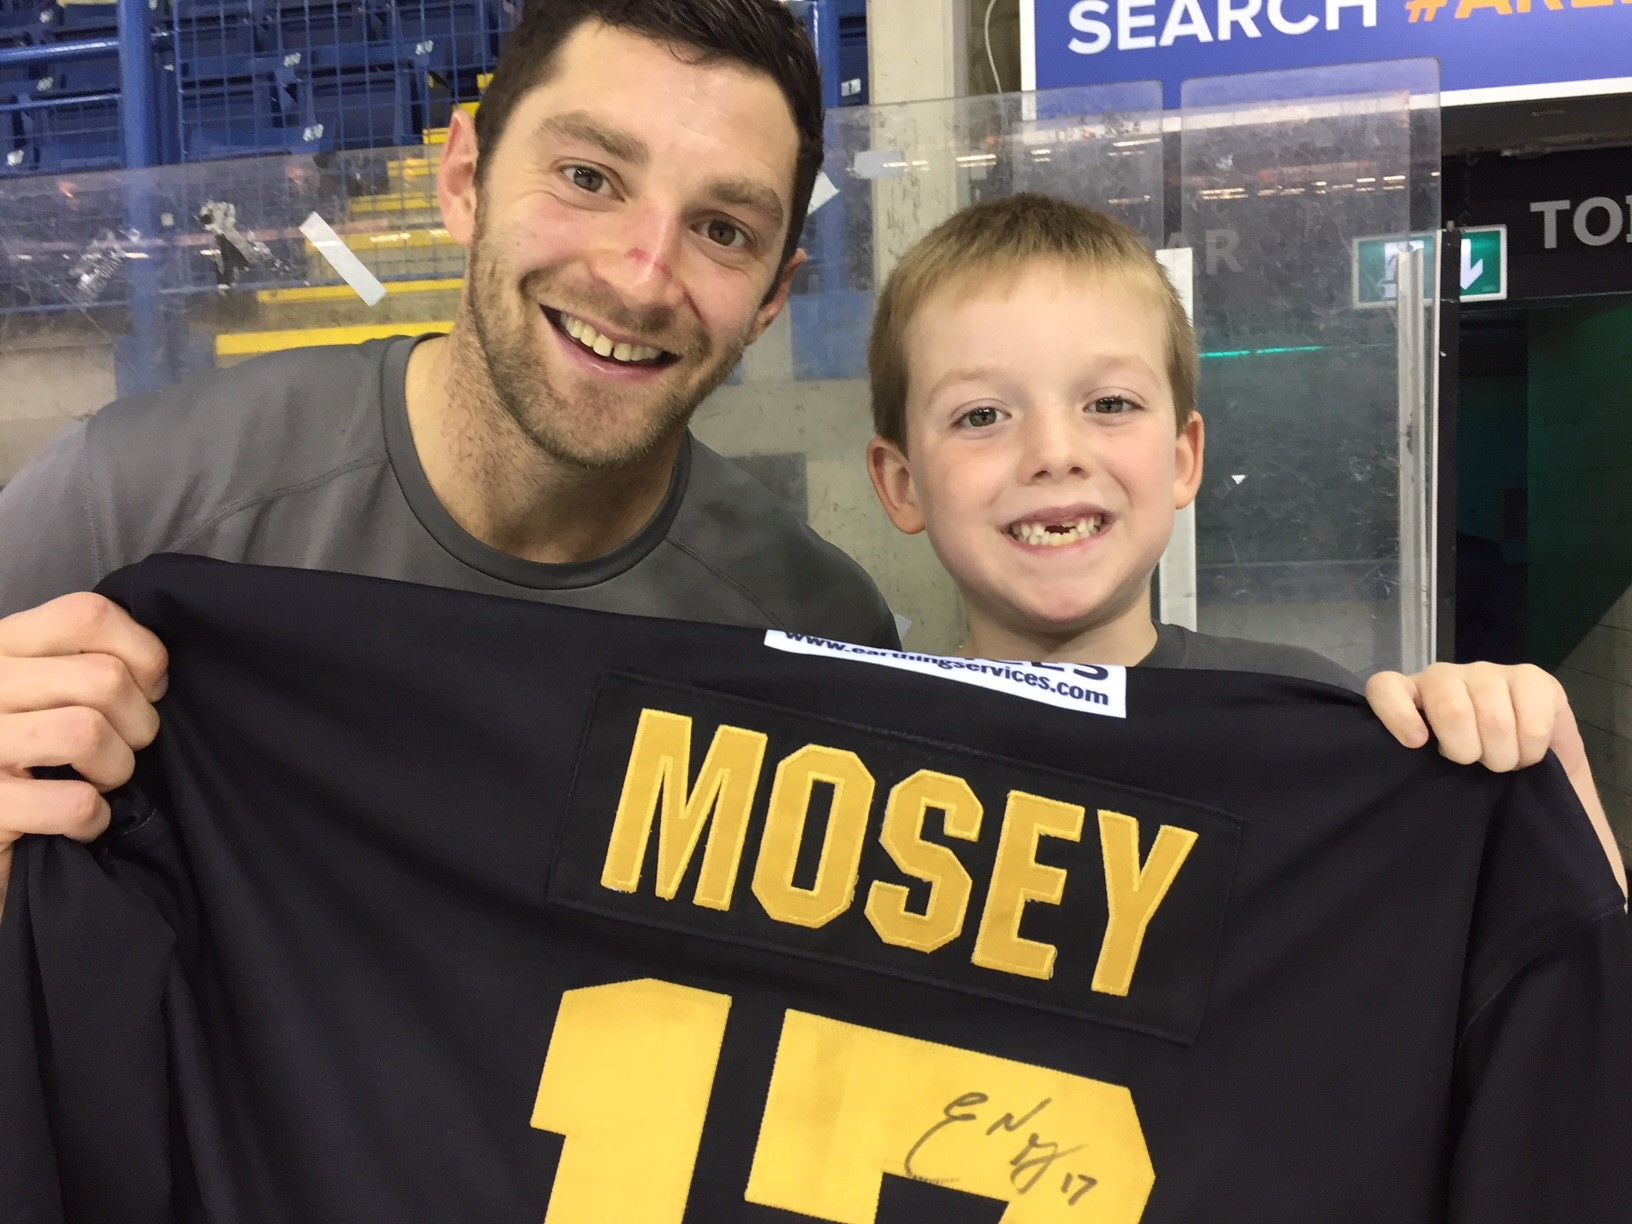 Young Panthers fan wins Mosey's jersey Top Image